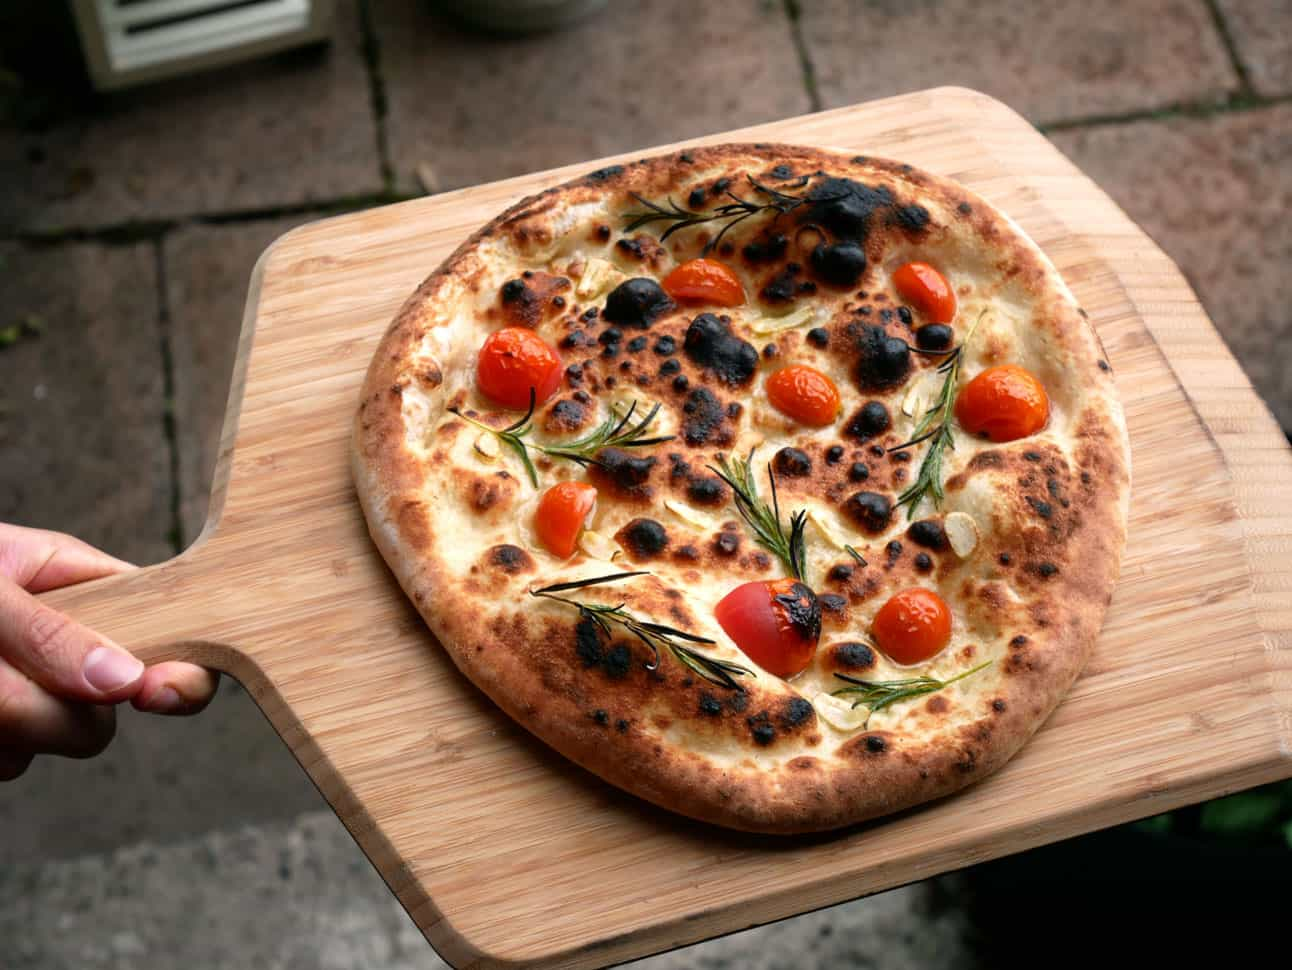 Focaccia pizza with cherry tomato and rosemary Featured Image